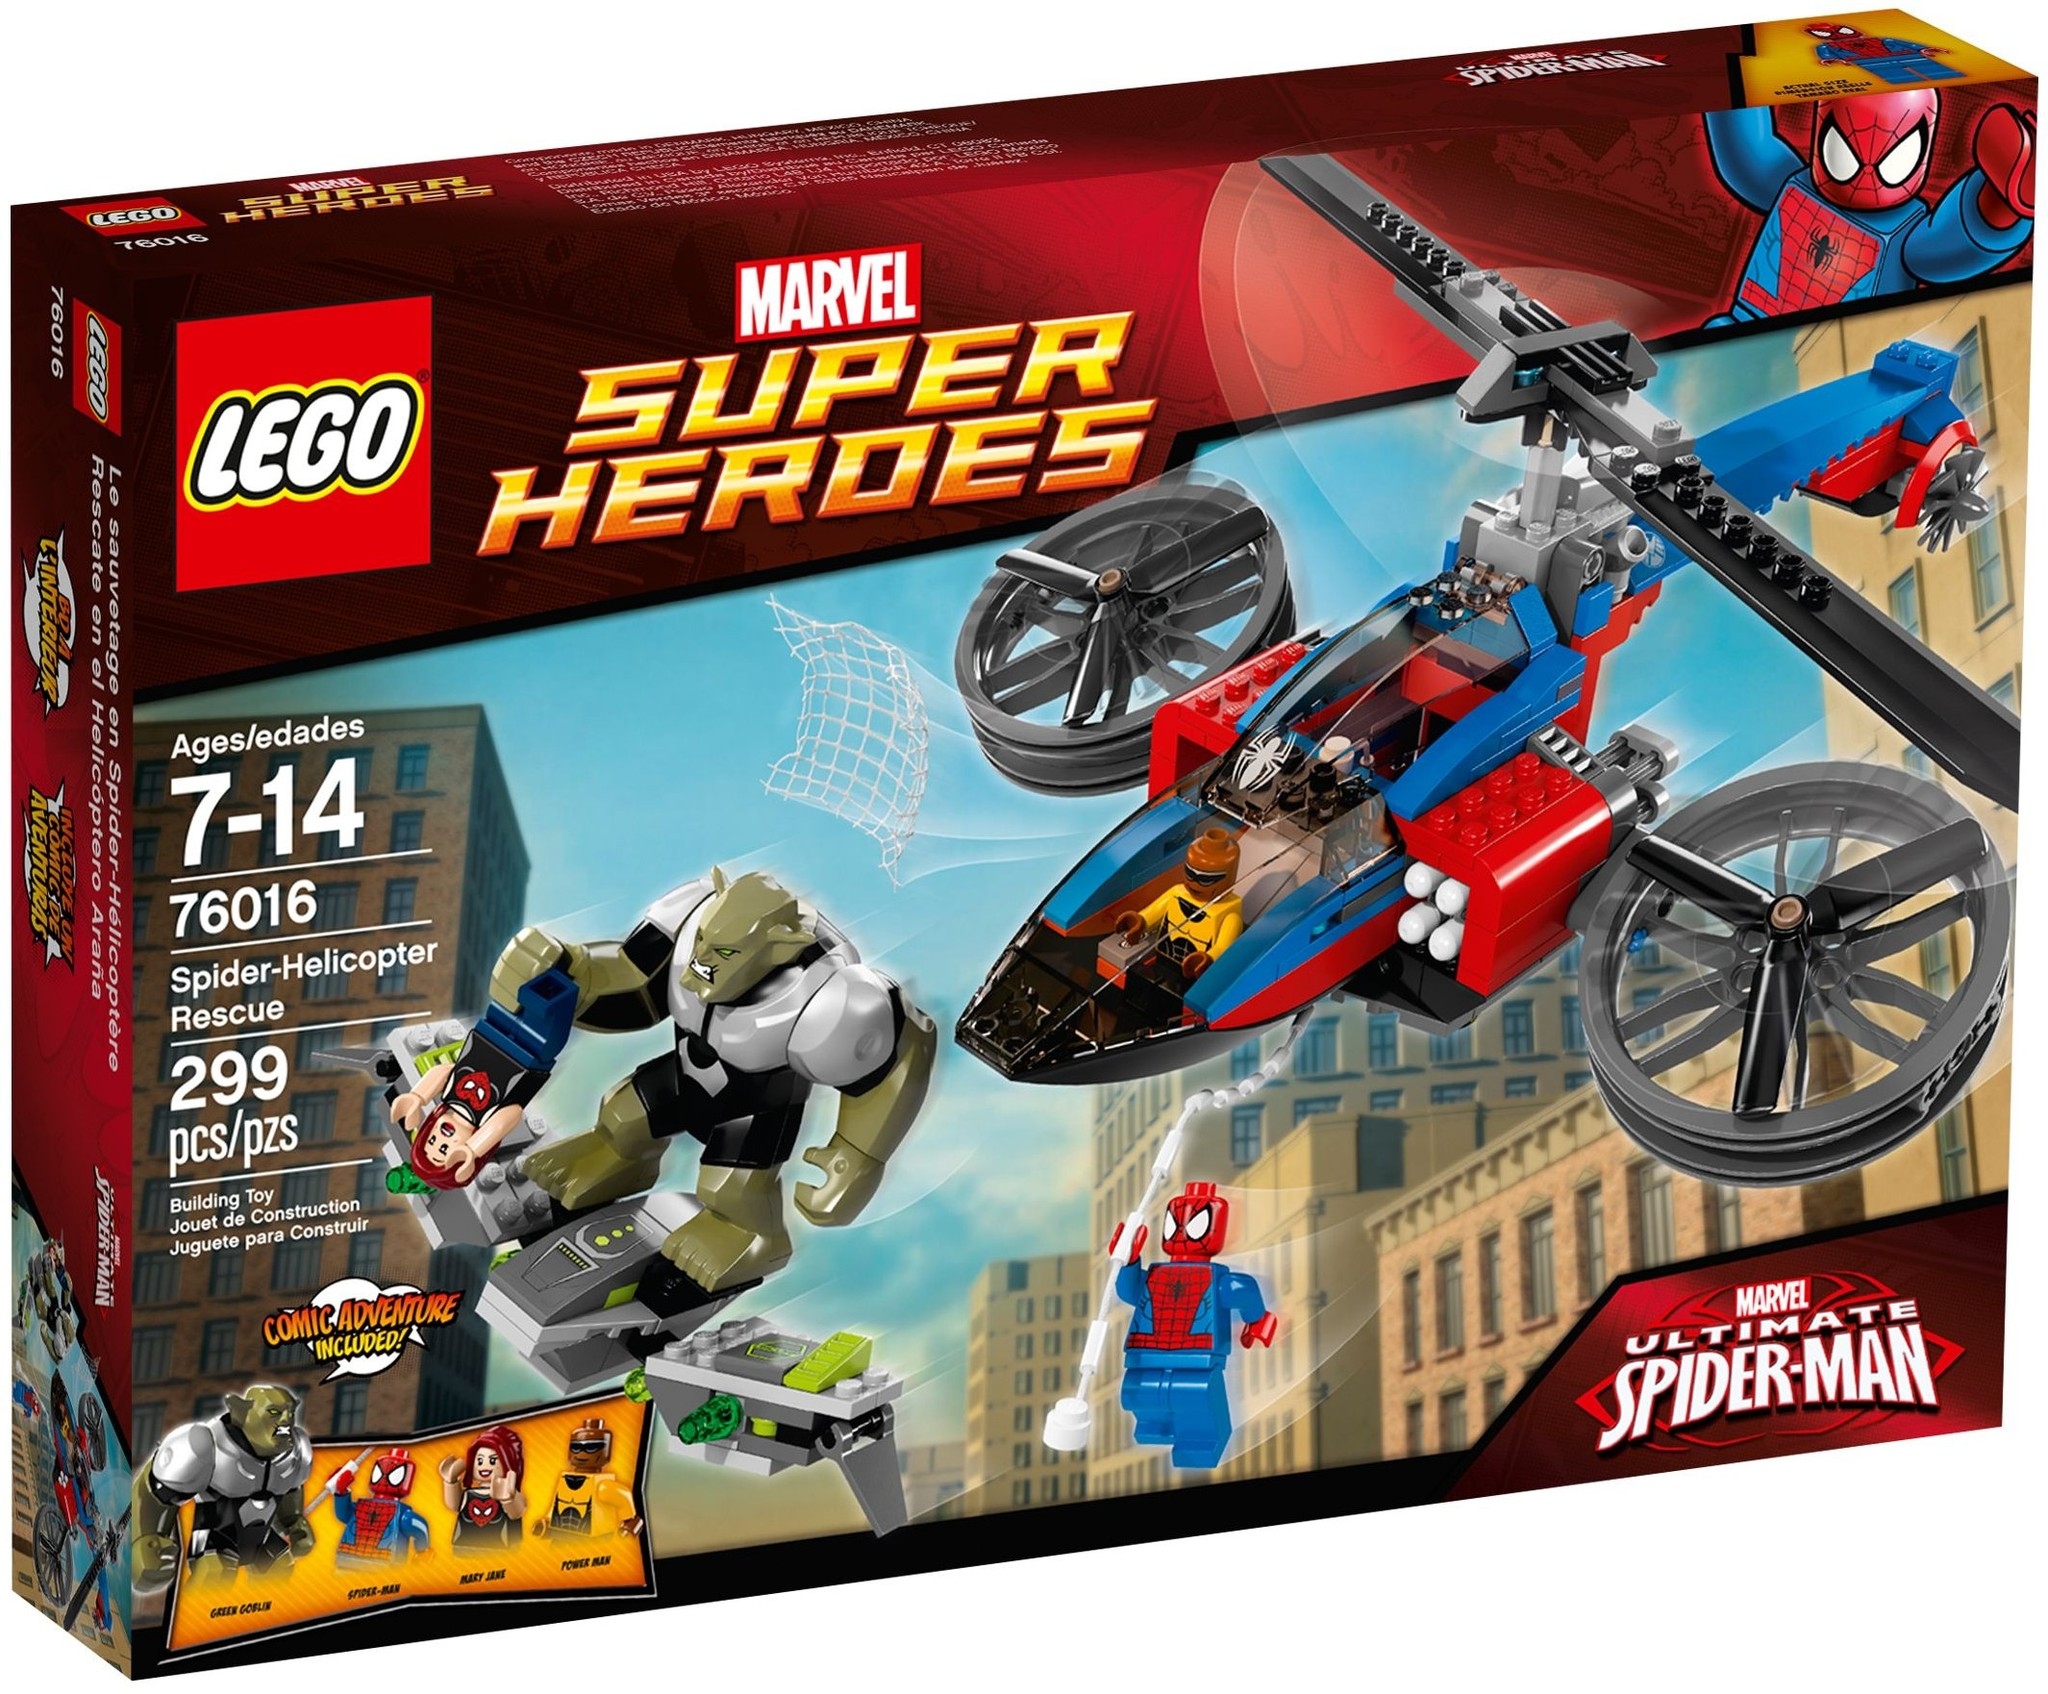 LEGO 76016 - Super Heroes - Spider-Helicopter Rescue